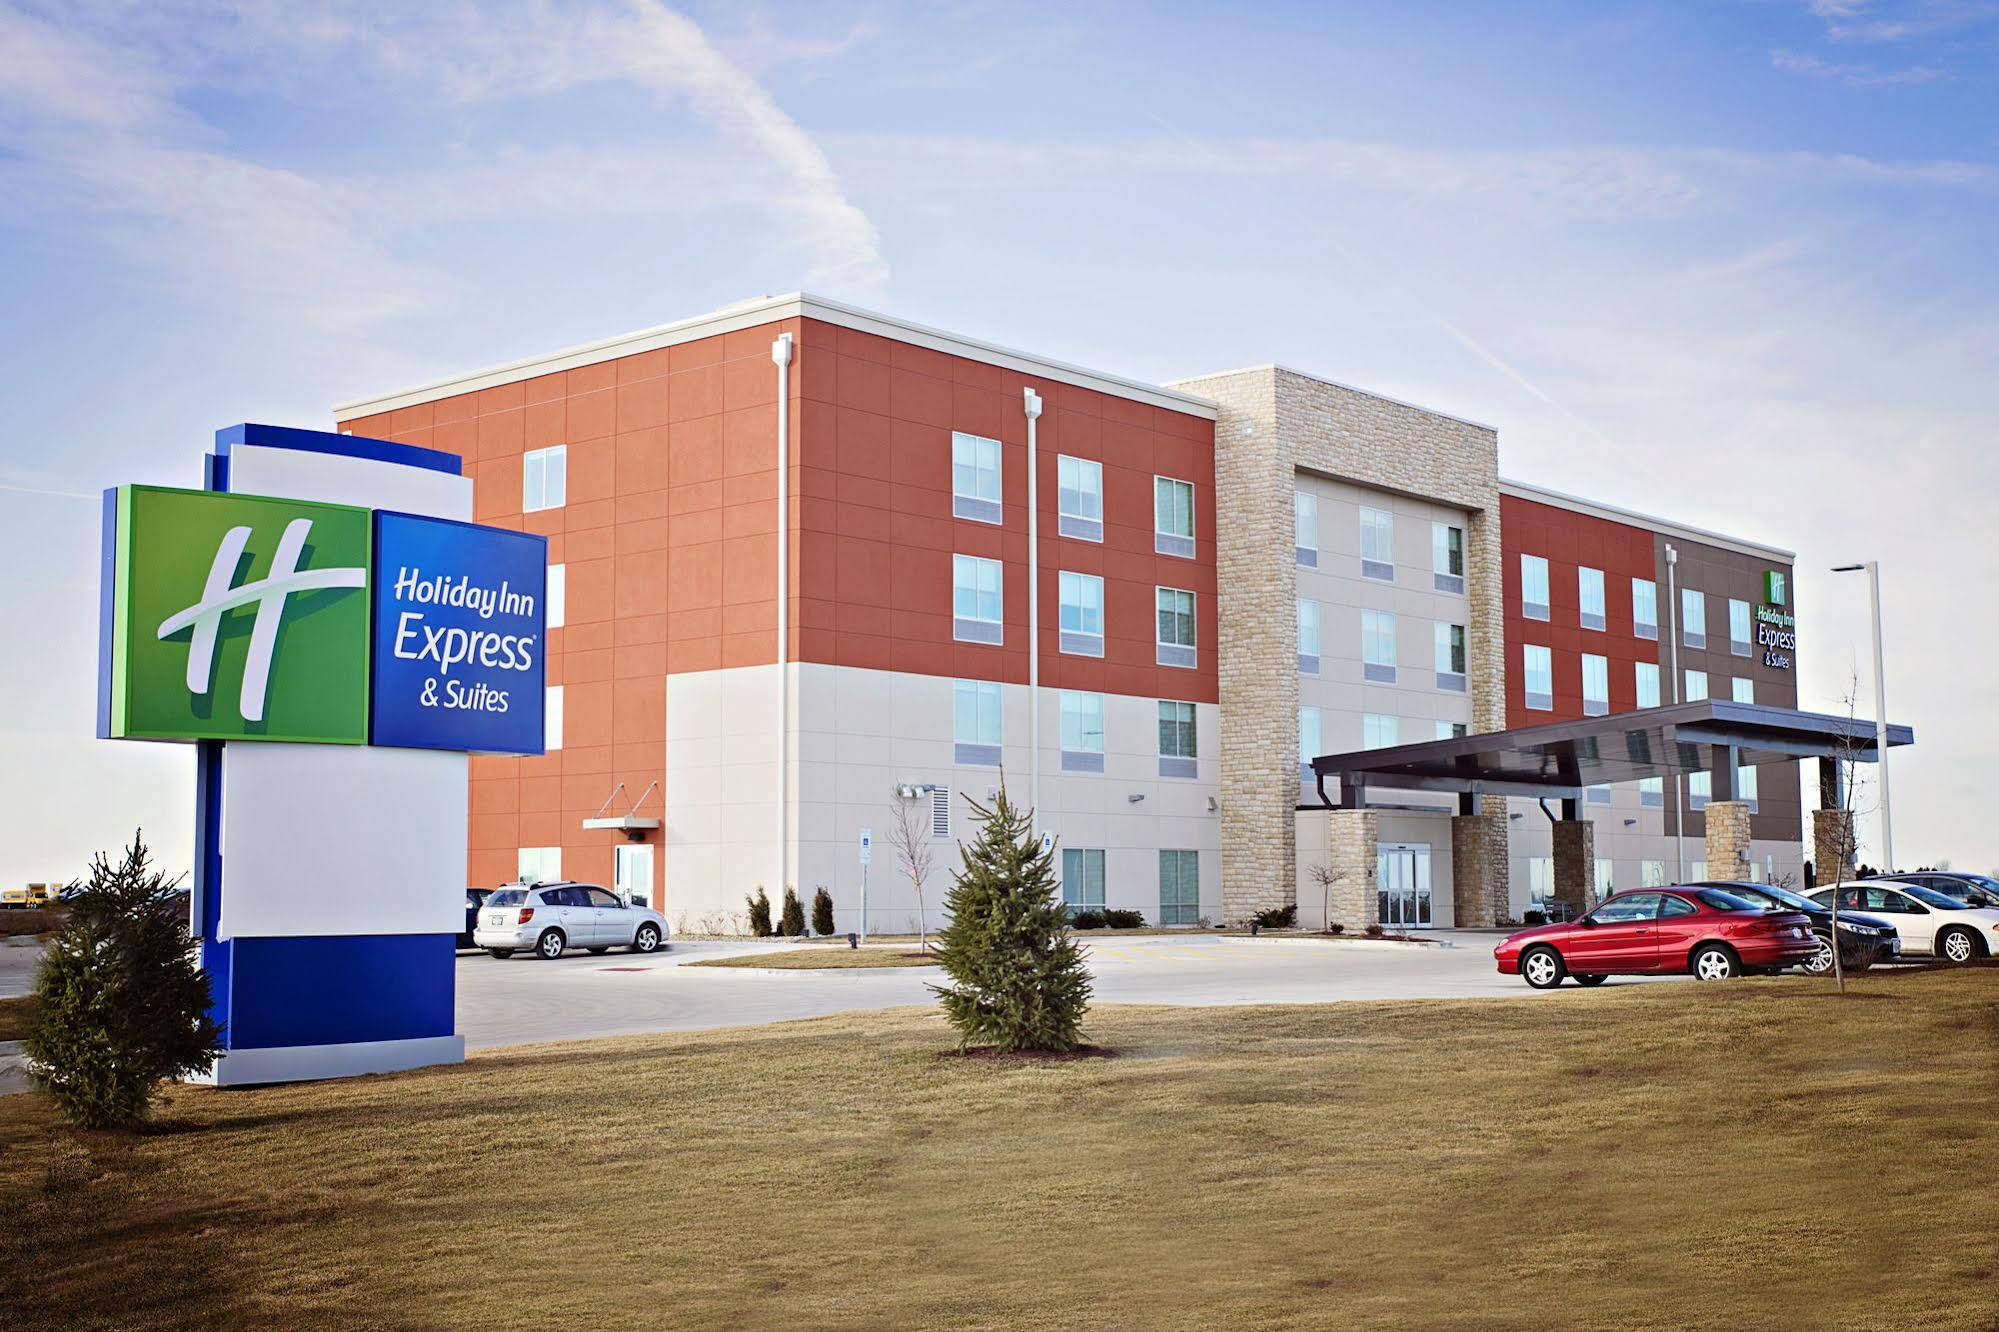 Holiday Inn Express and Suites Rantoul